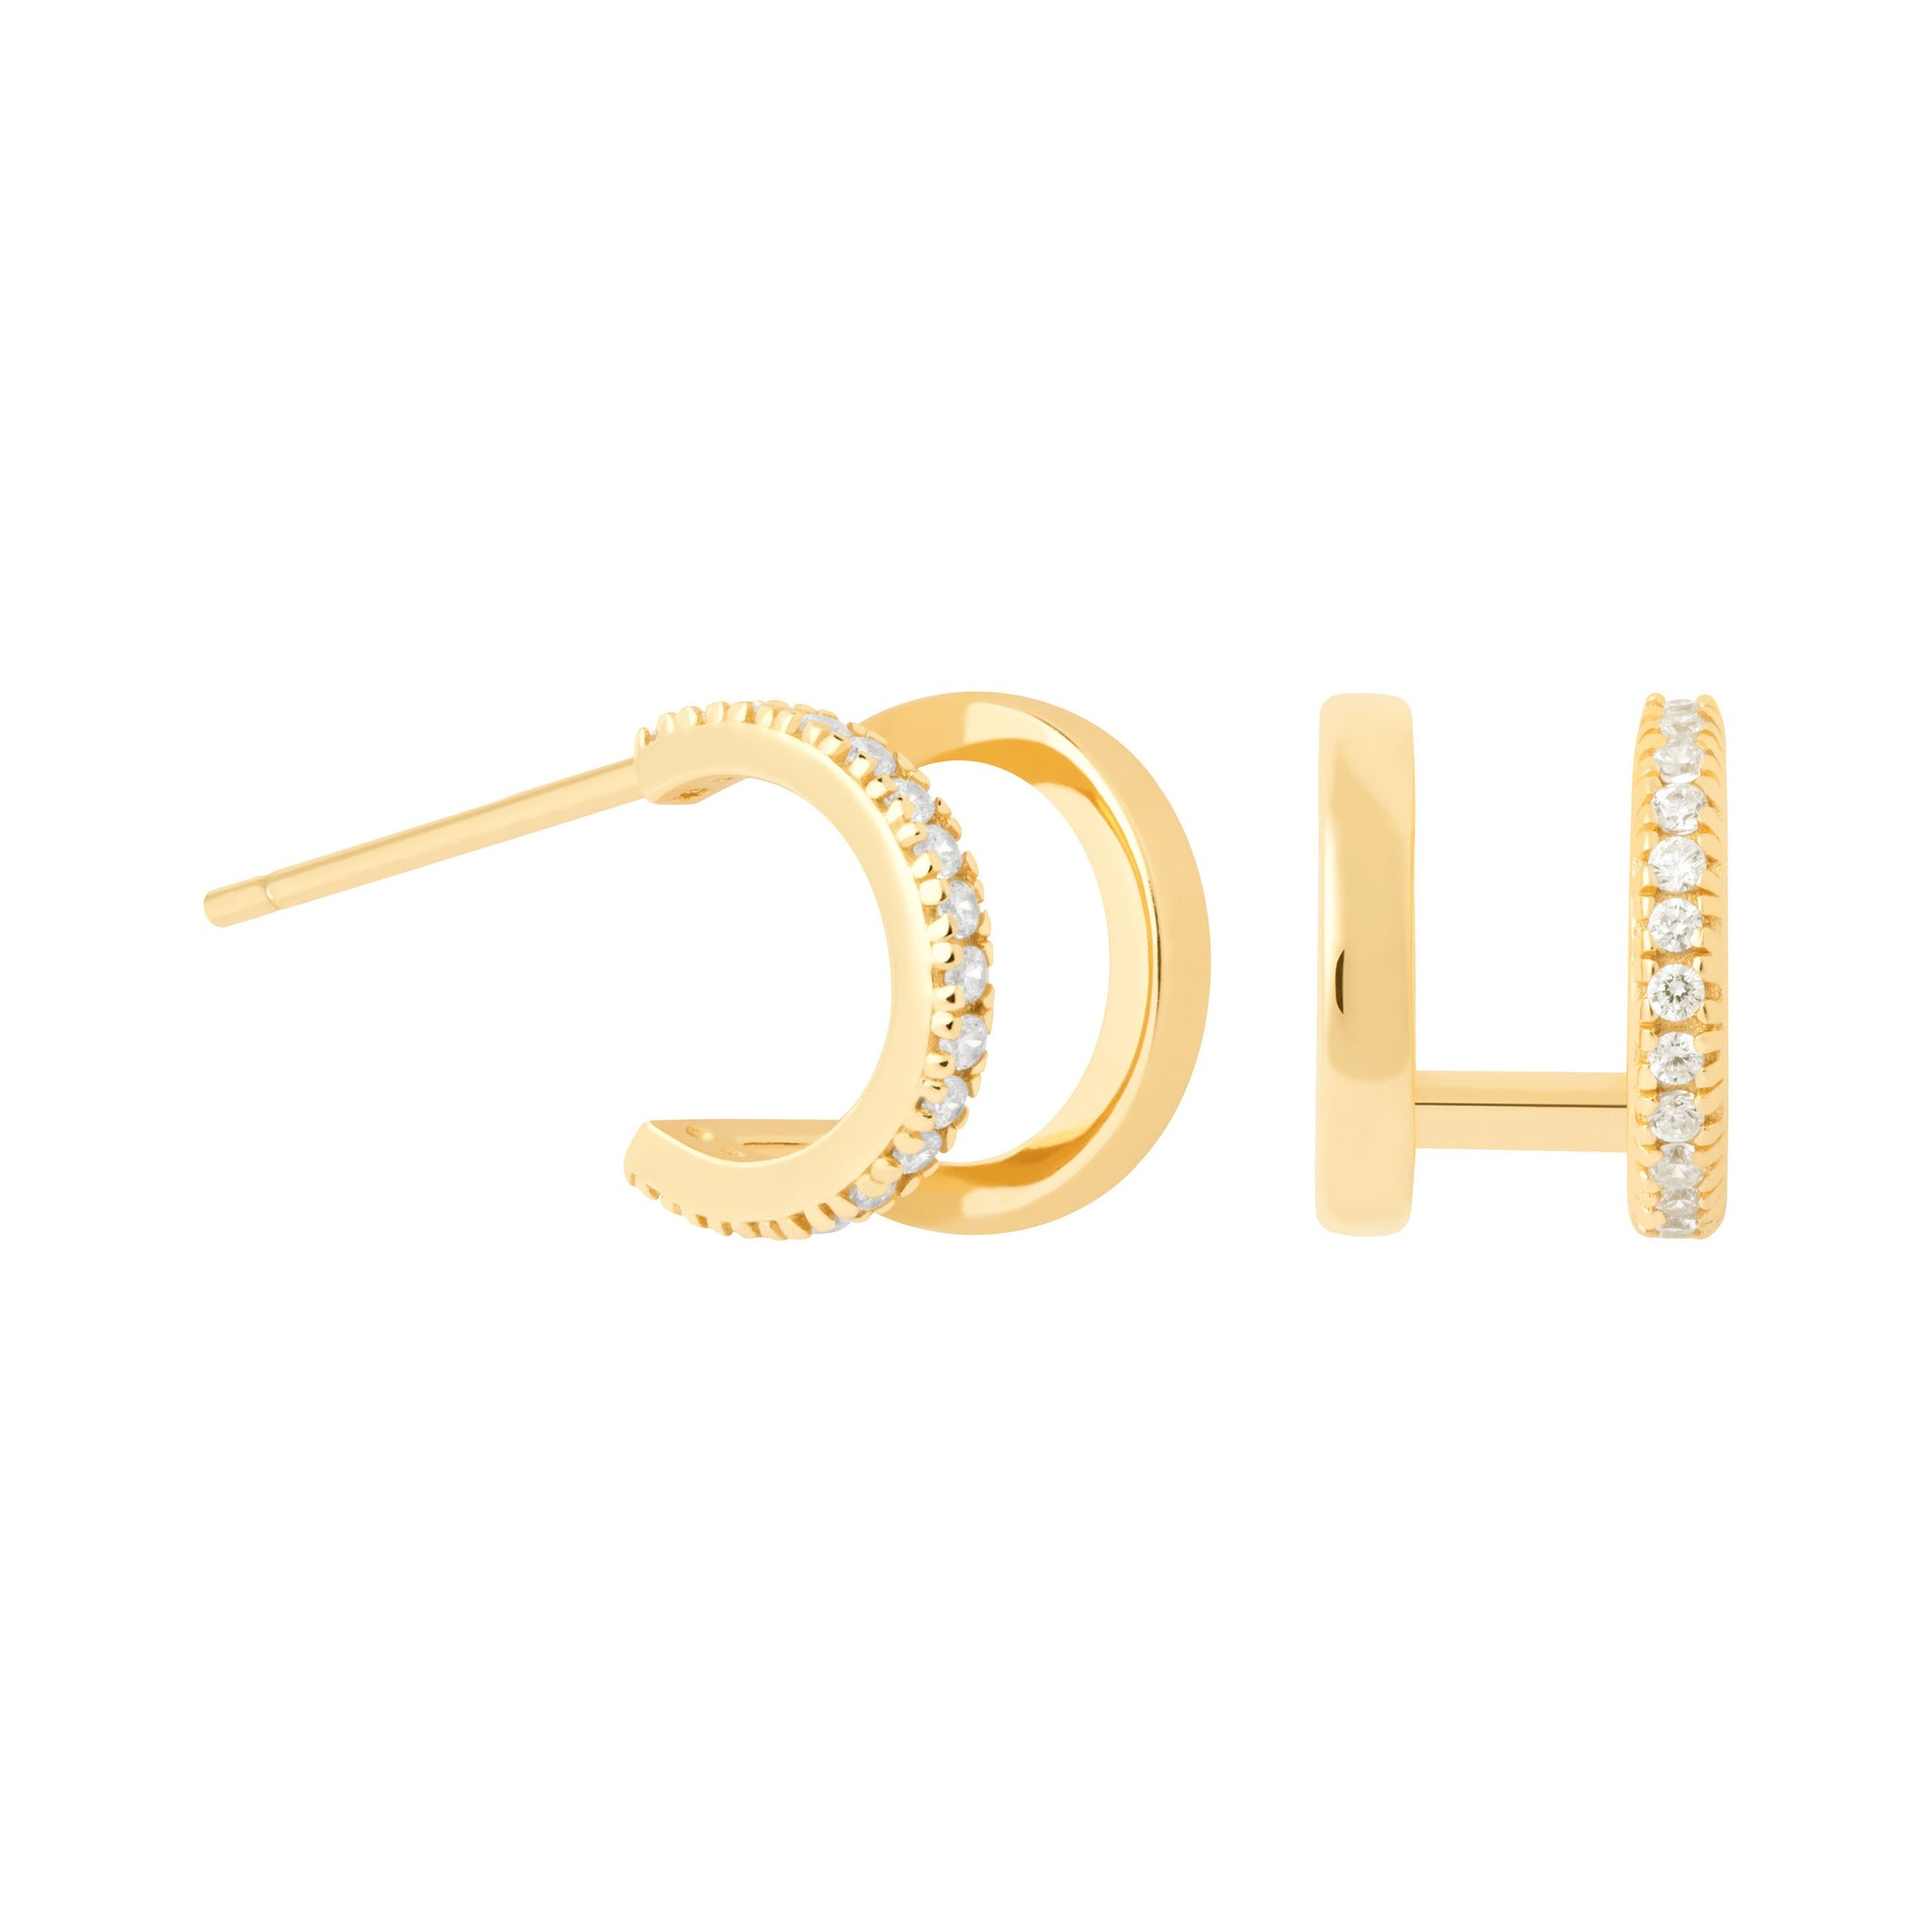 Illusion Stud Earrings in Gold